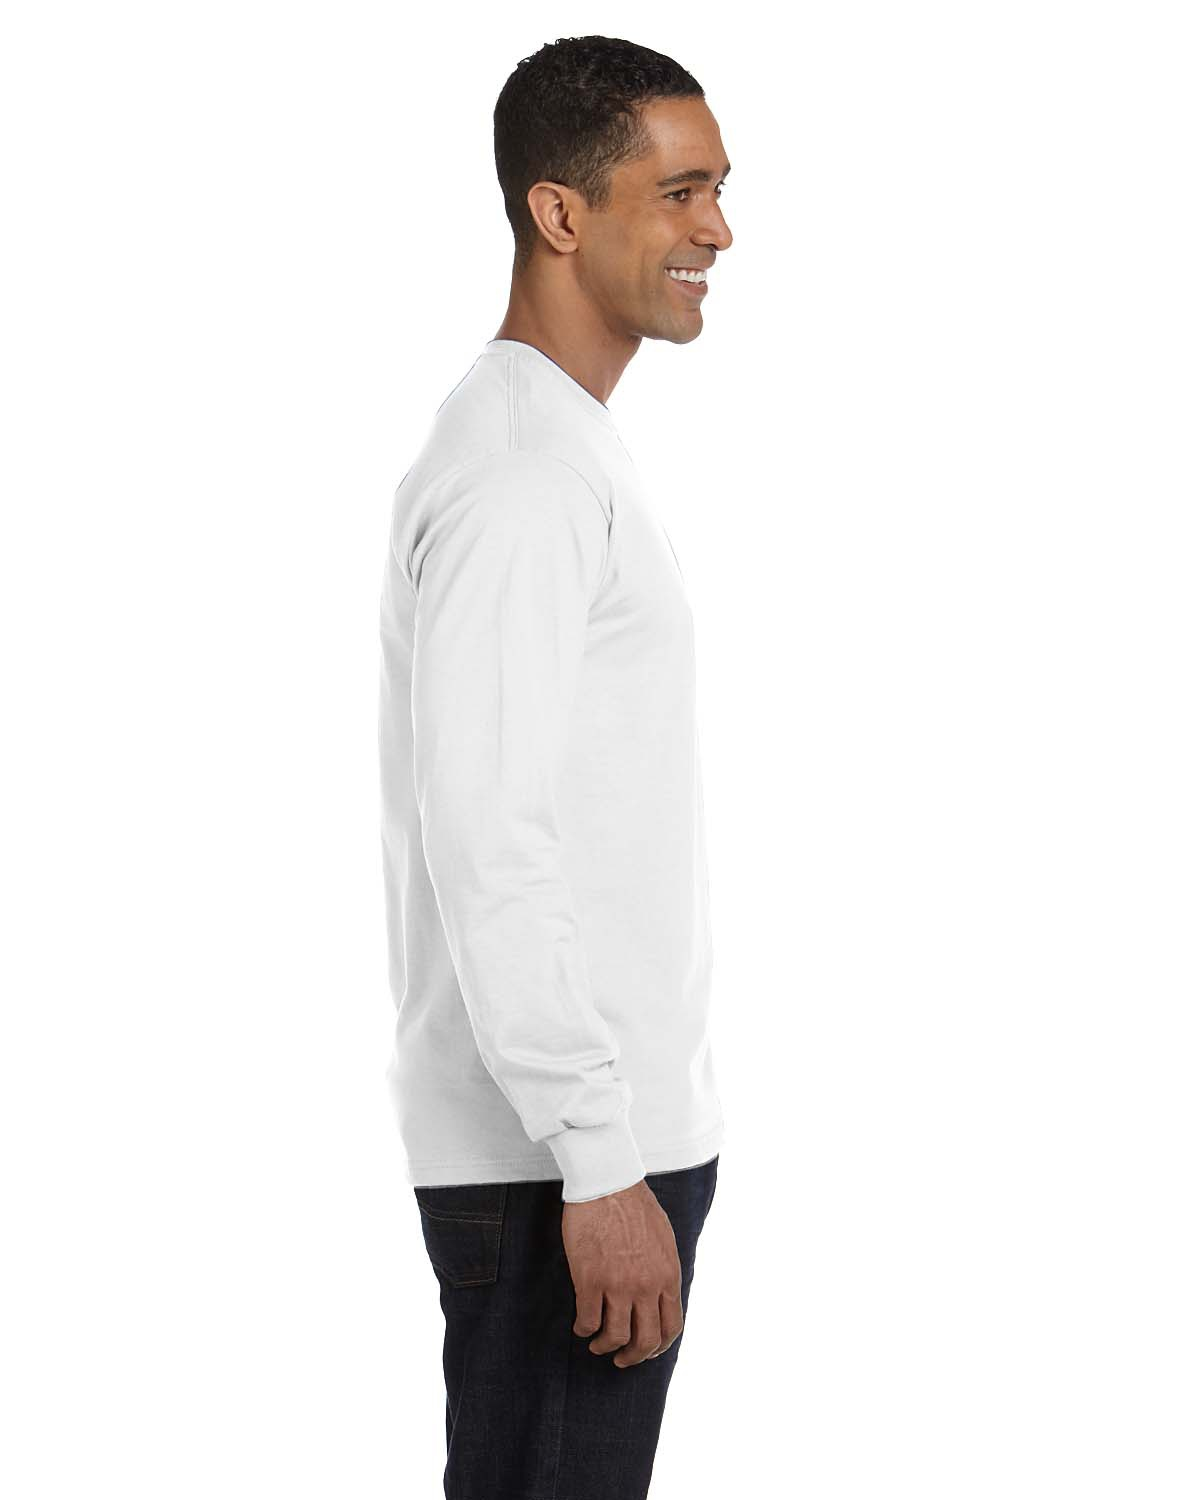 'Hanes 5286 ComfortSoft Long Sleeve Cotton T-Shirt'